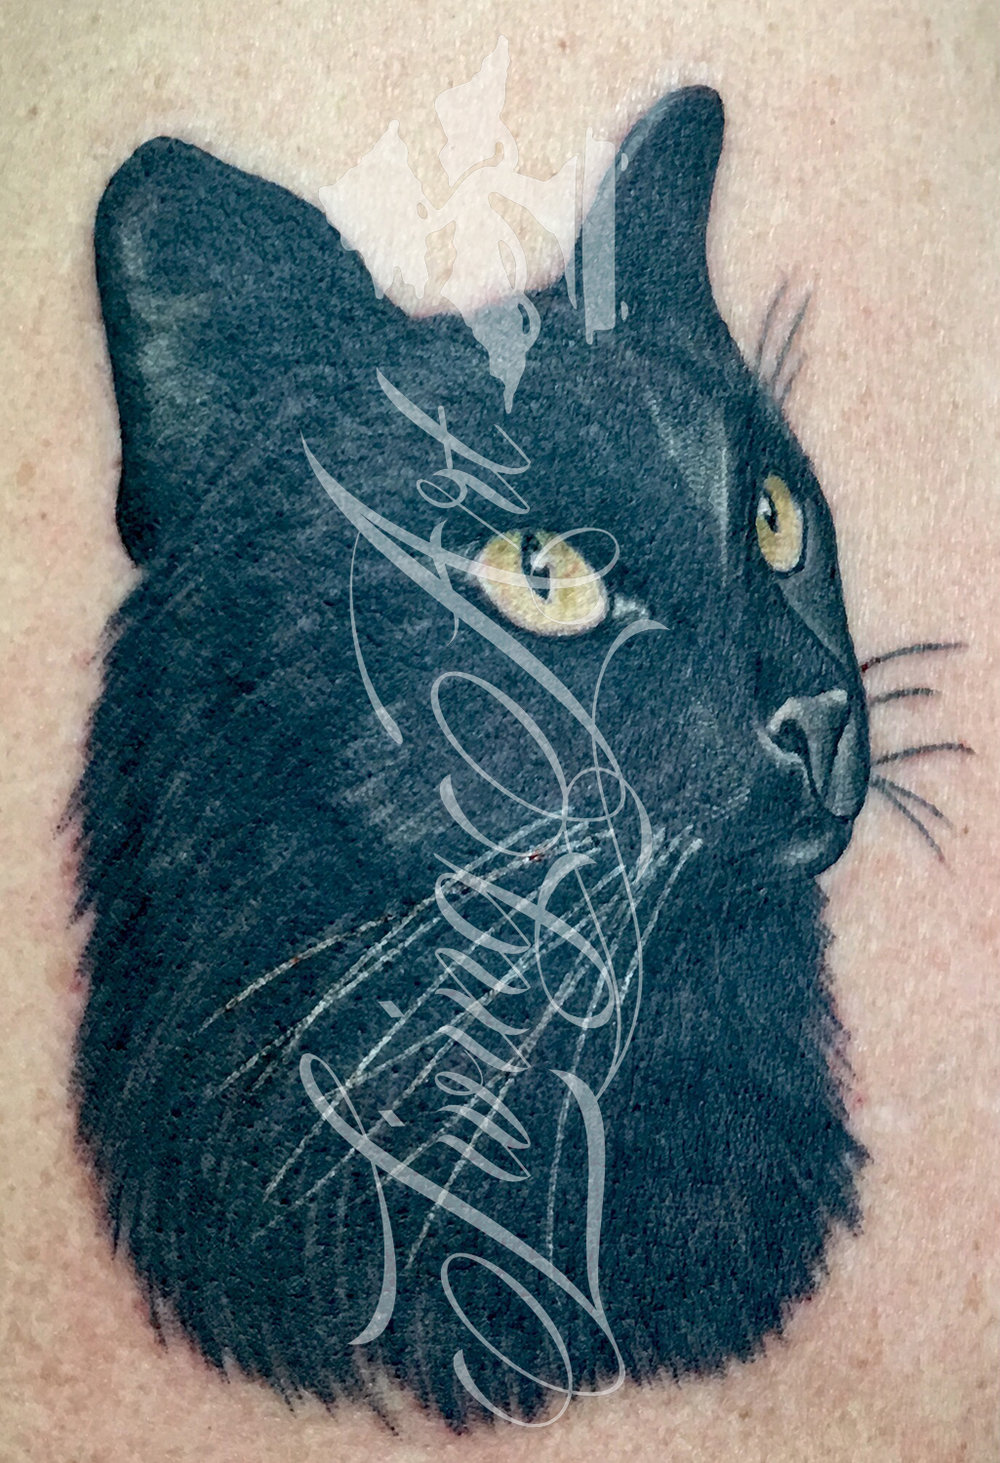 josh kirkpatrick tattoo_ cat tattoo_cat.jpg